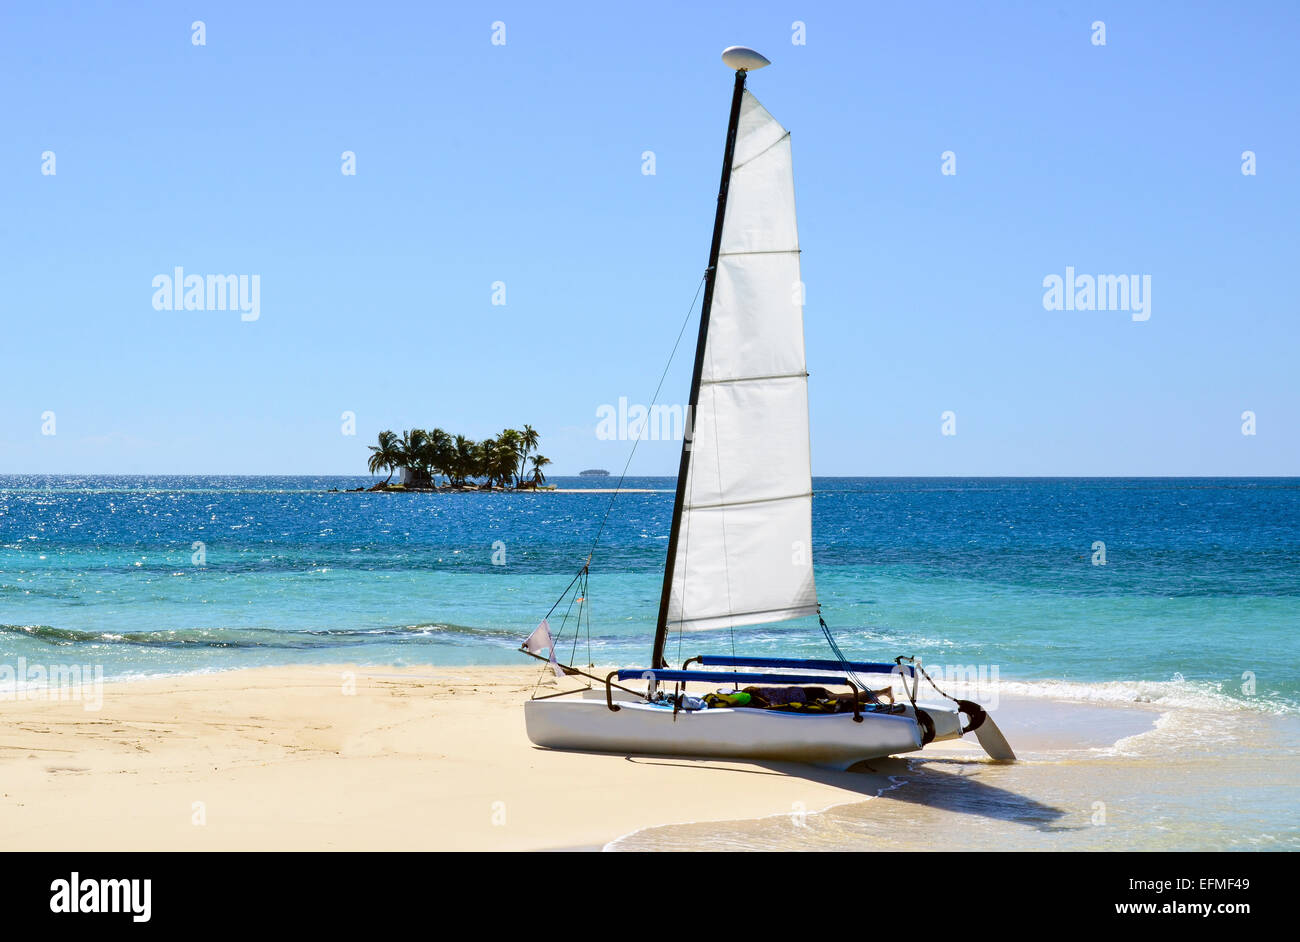 Day Sailing in the Belize Cays, Caribbean Sea - Stock Image